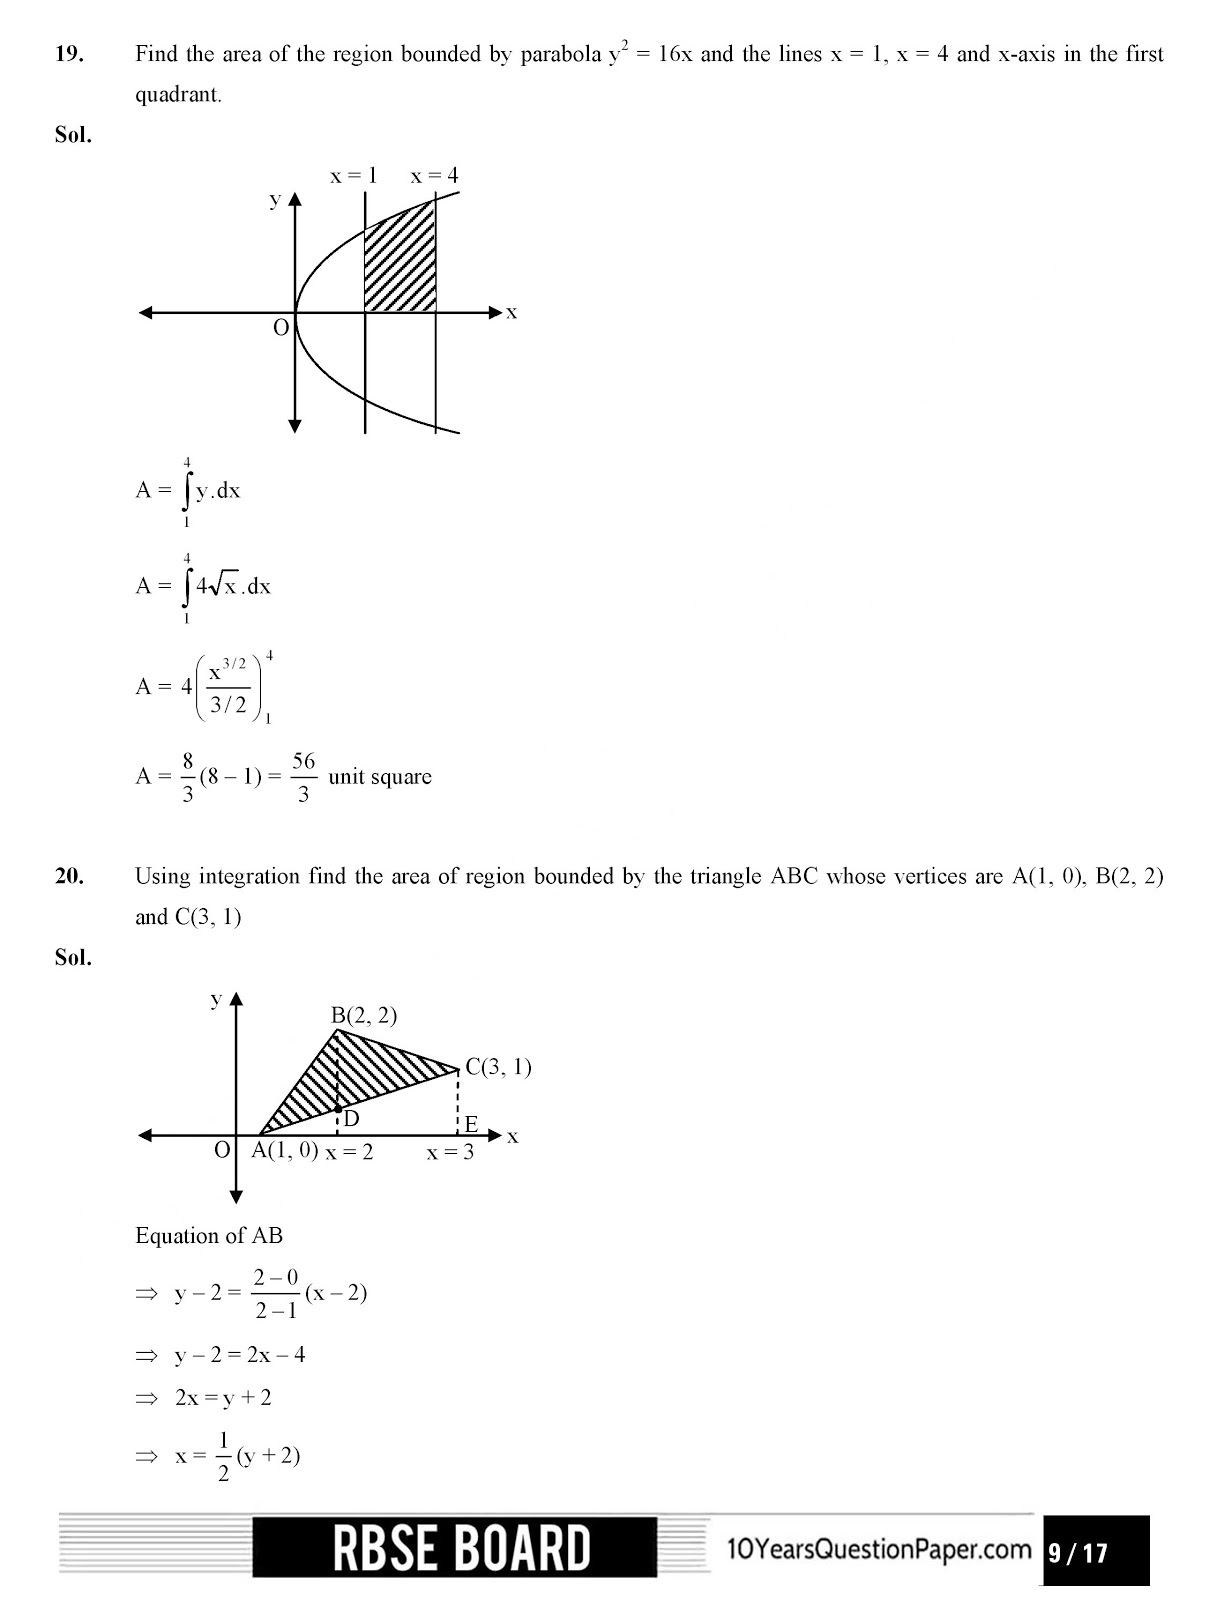 RBSE class 12th 2017 Mathematics question paper with solution